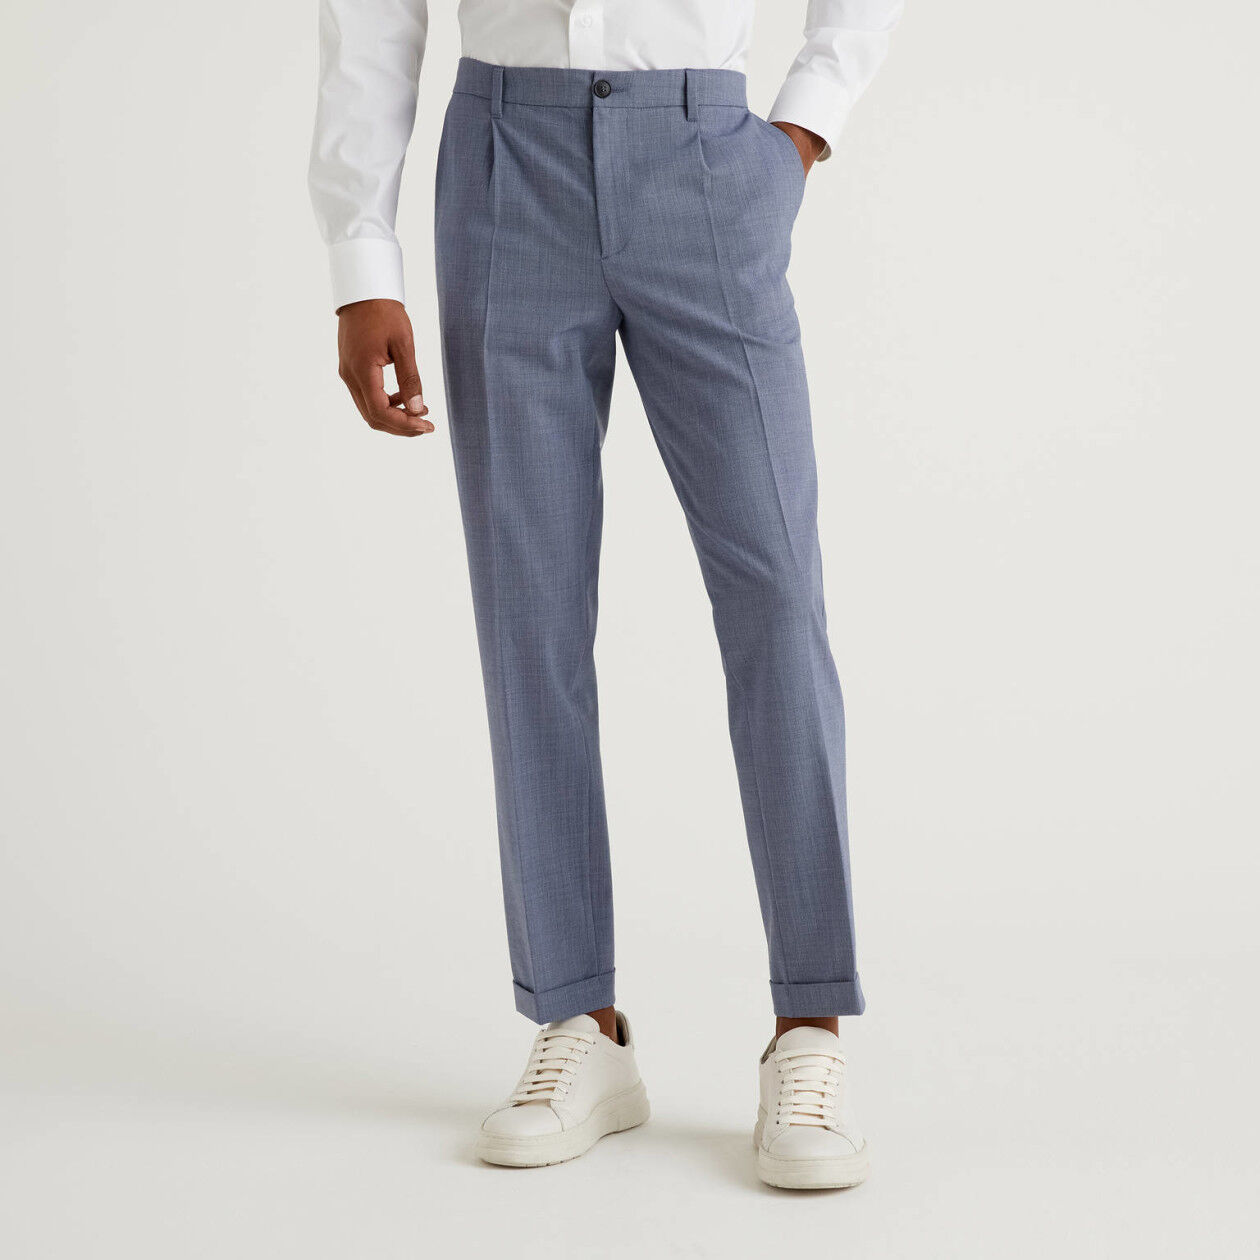 Slim fit chinos with cuffs